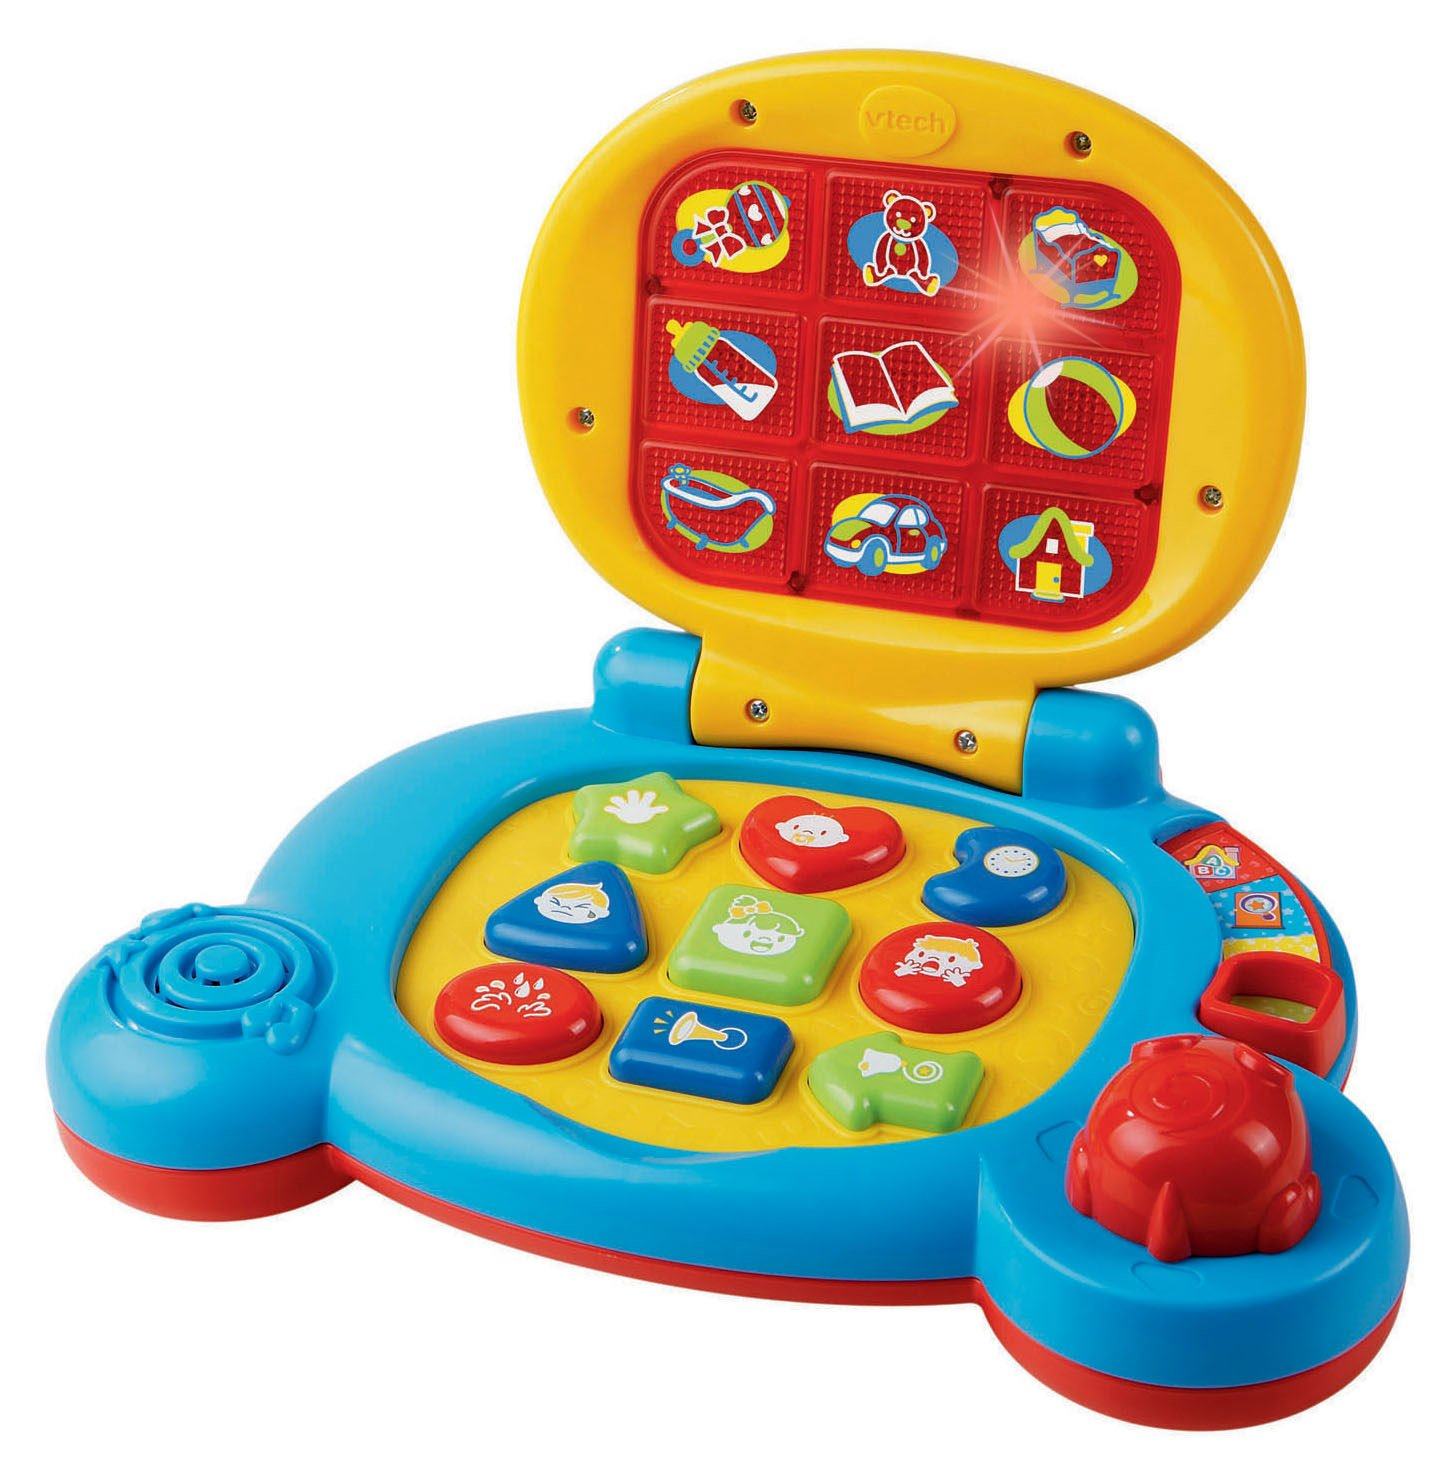 Amazon VTech Baby s Learning Laptop Toy Frustration Free